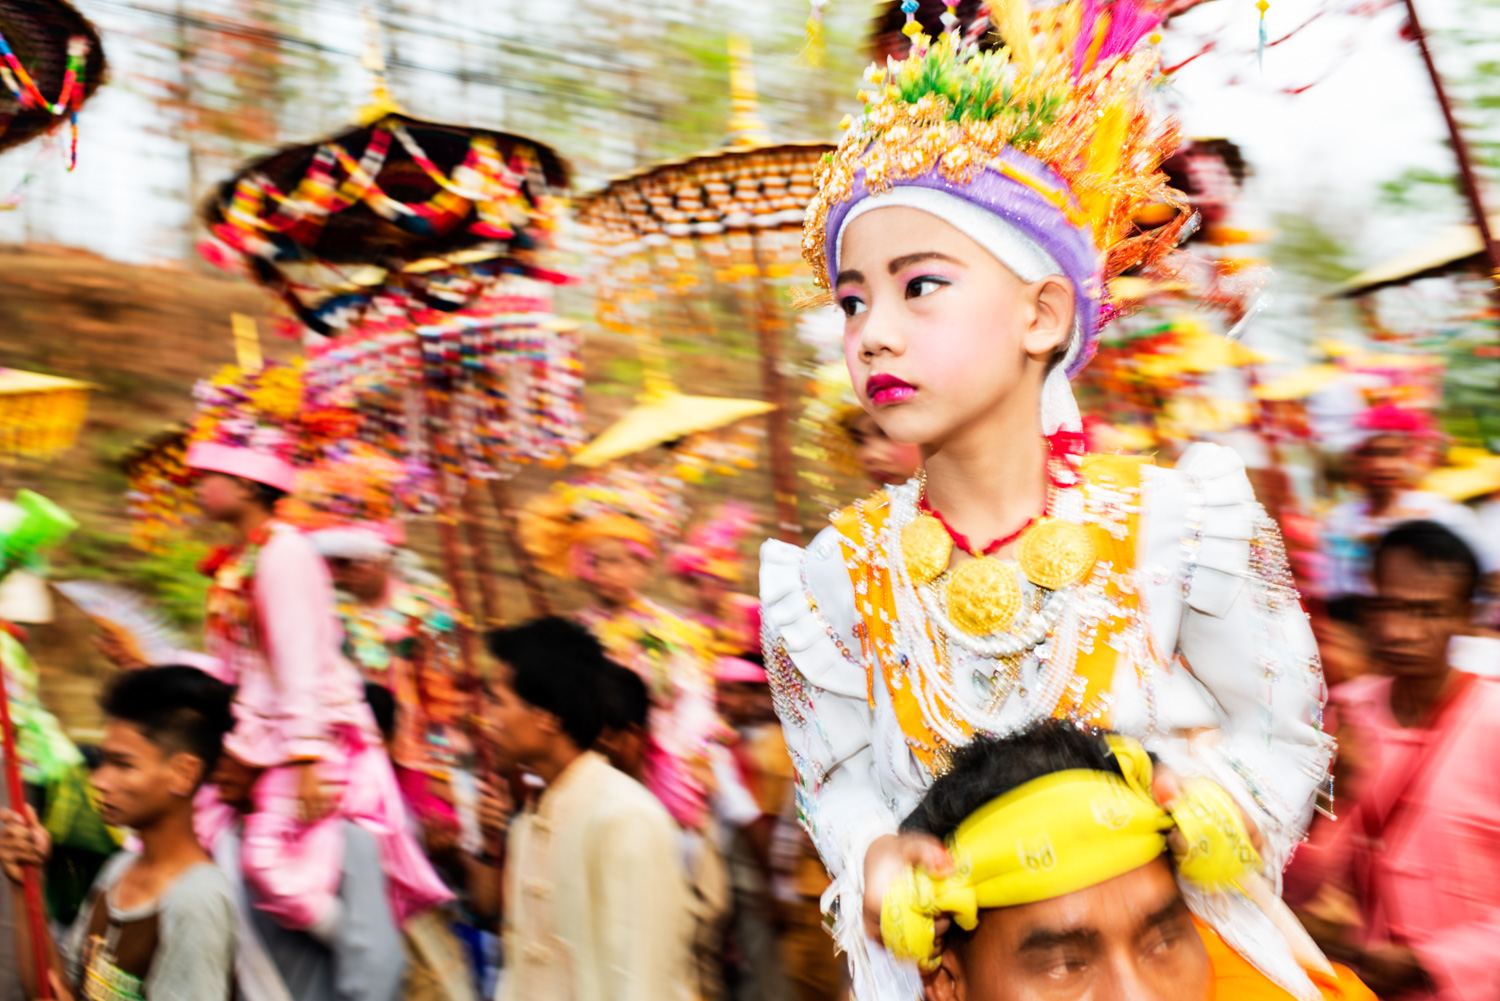 Poi Sang Long Festival - dPS Writer's Favorite Lens: Why I Love My 35mm F1.4